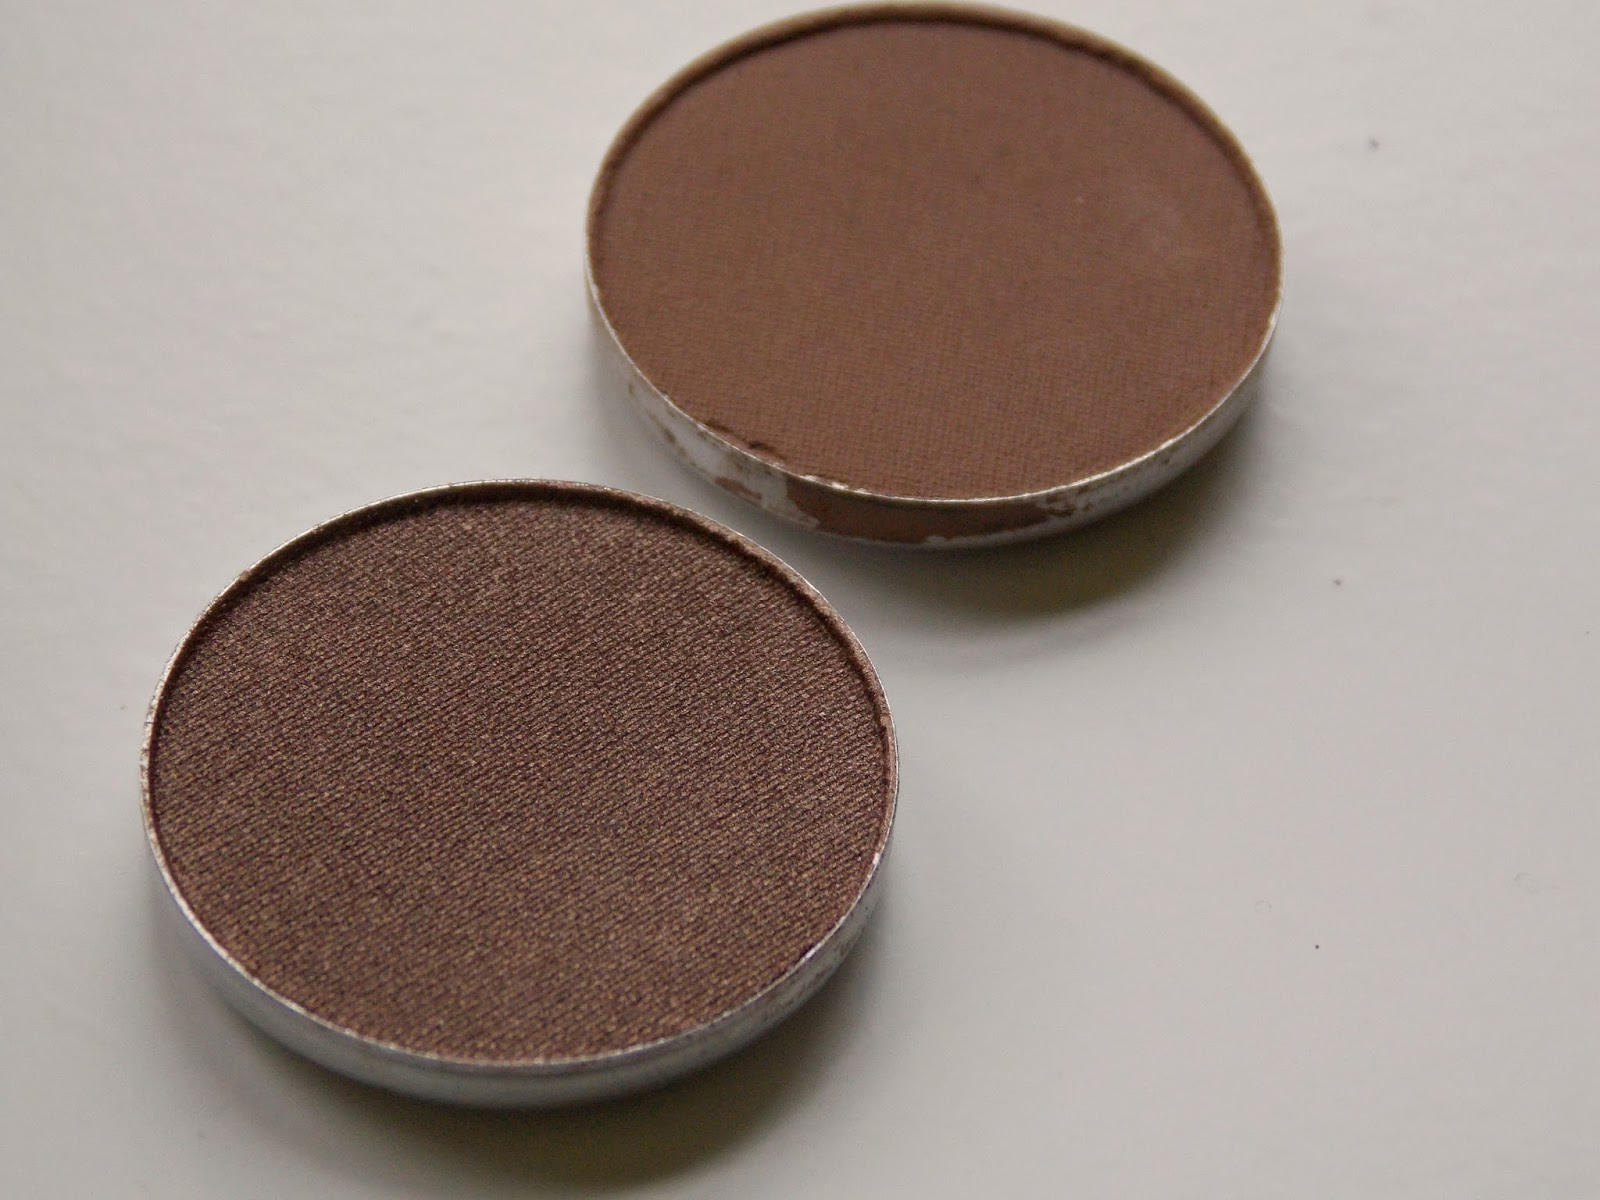 MAC eyeshadow pans, woodwinked and cork, review, photo, swatches, mac pro palette, quad, pan